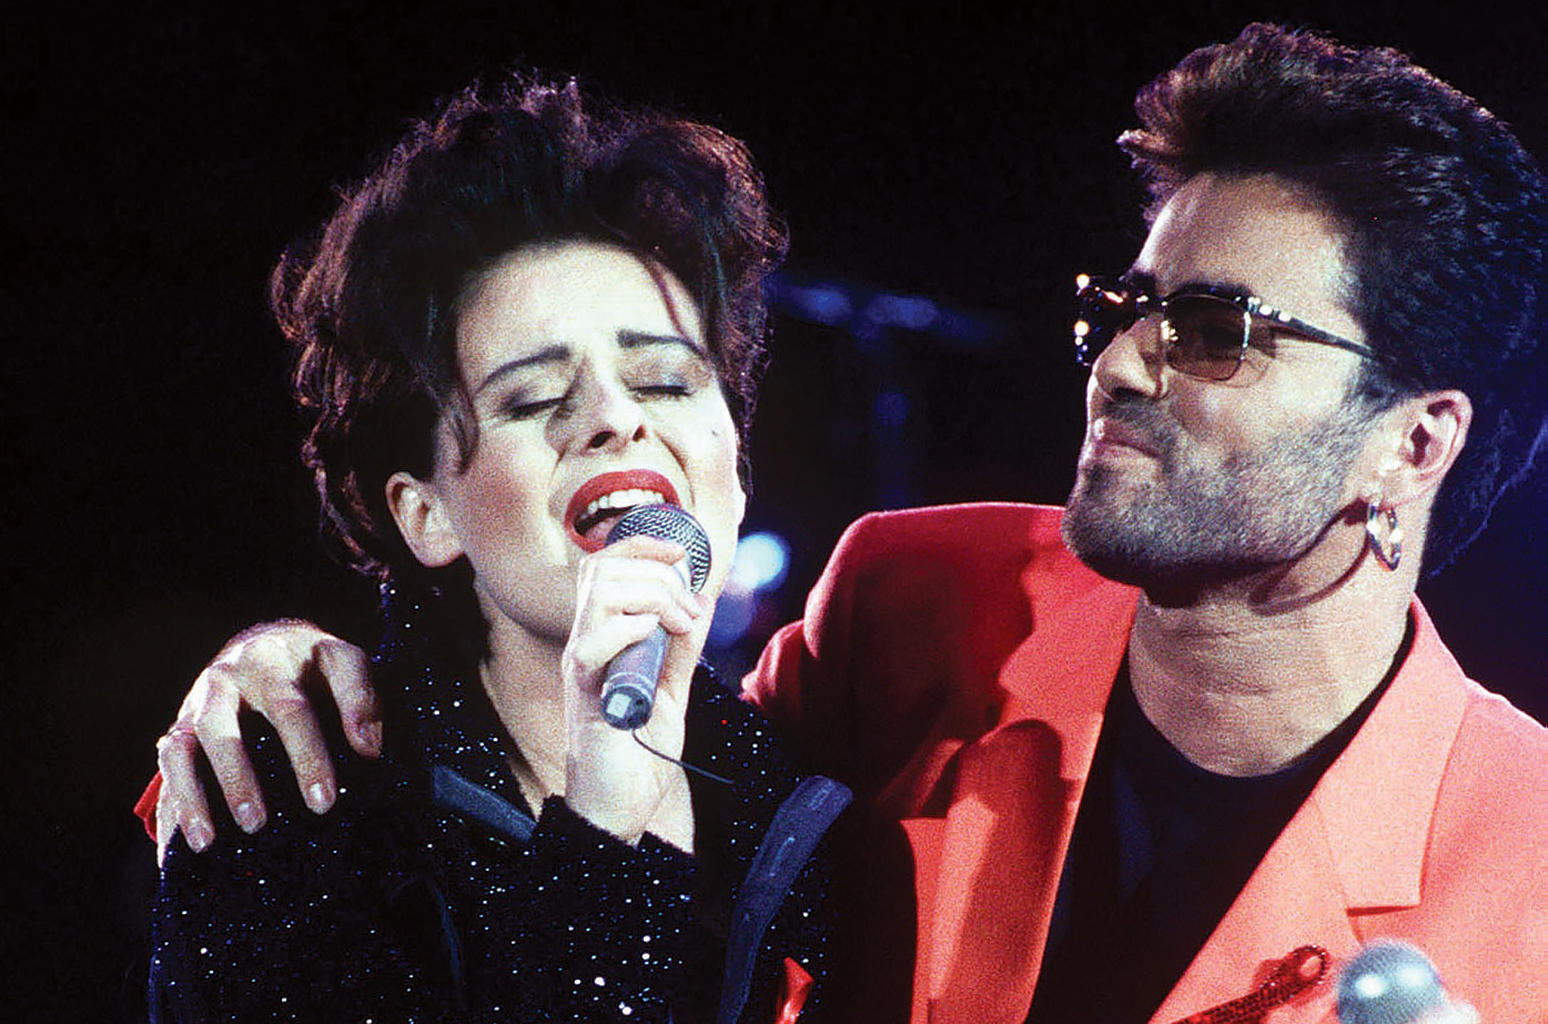 Remembering George Michael: Lisa Stansfield Shares Memories of Singing With Him at Freddie Mercury Tribute Concert | Billboard